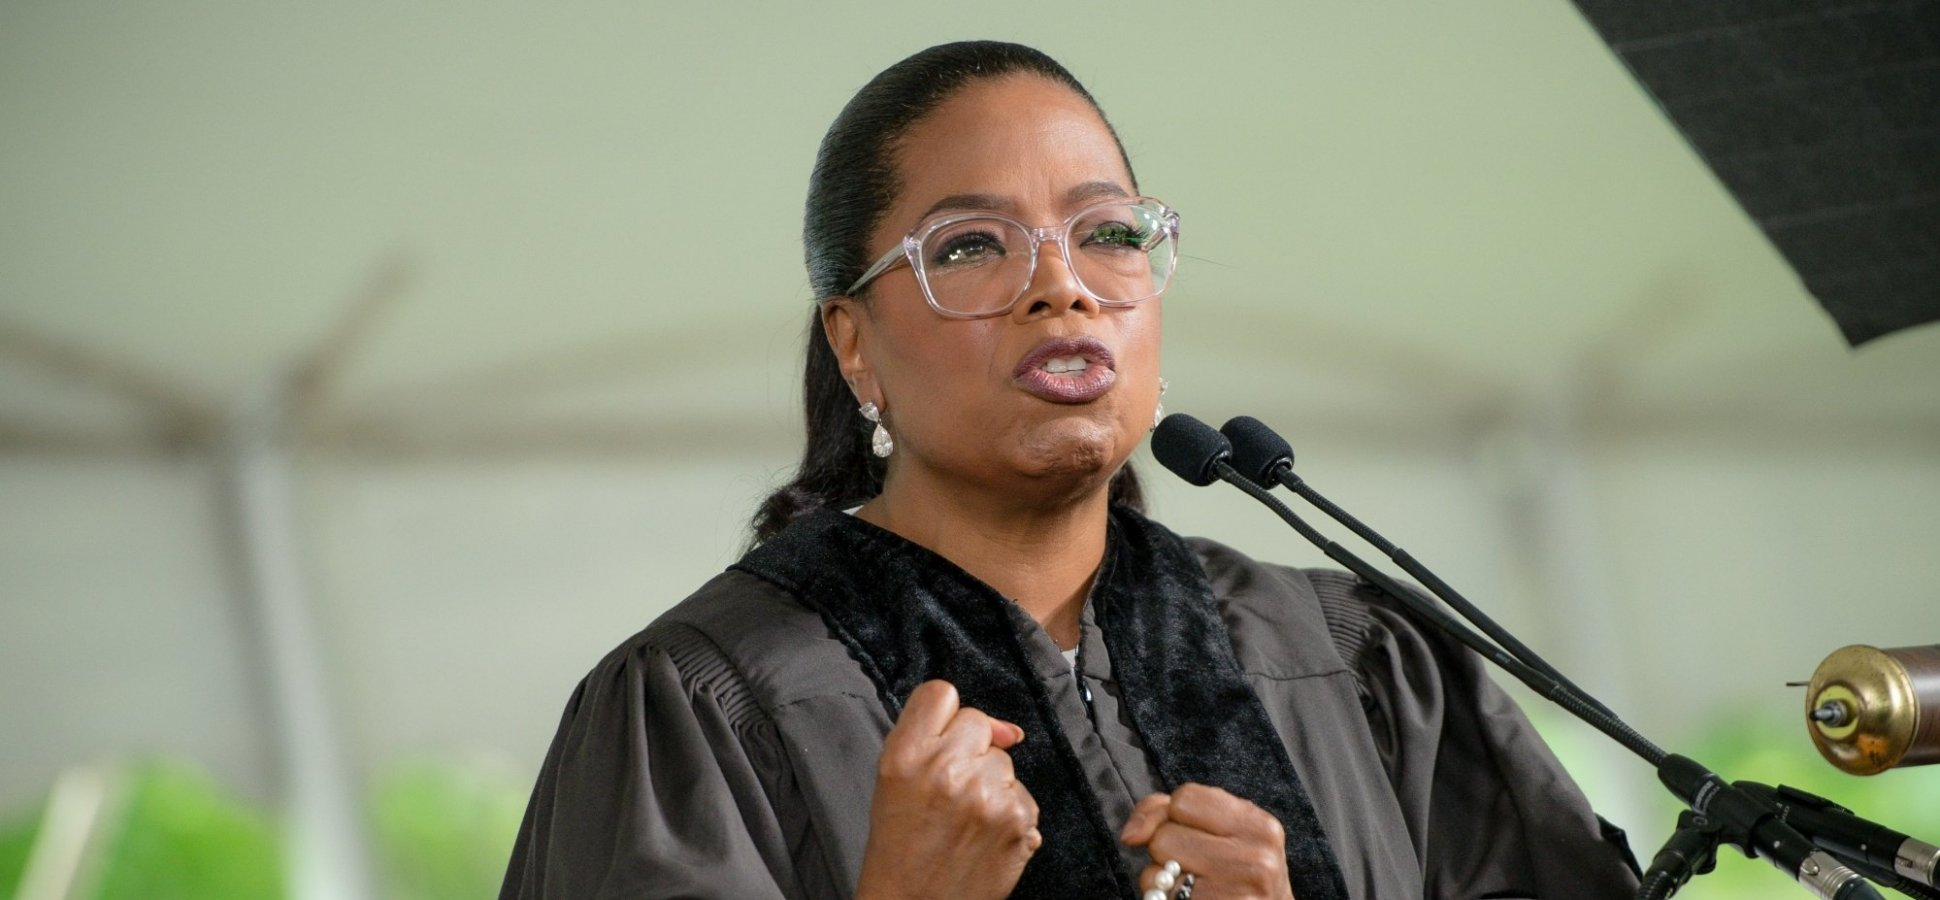 Oprah's Brilliant Career Advice for 20-Somethings Is a Master Class in Emotional Intelligence